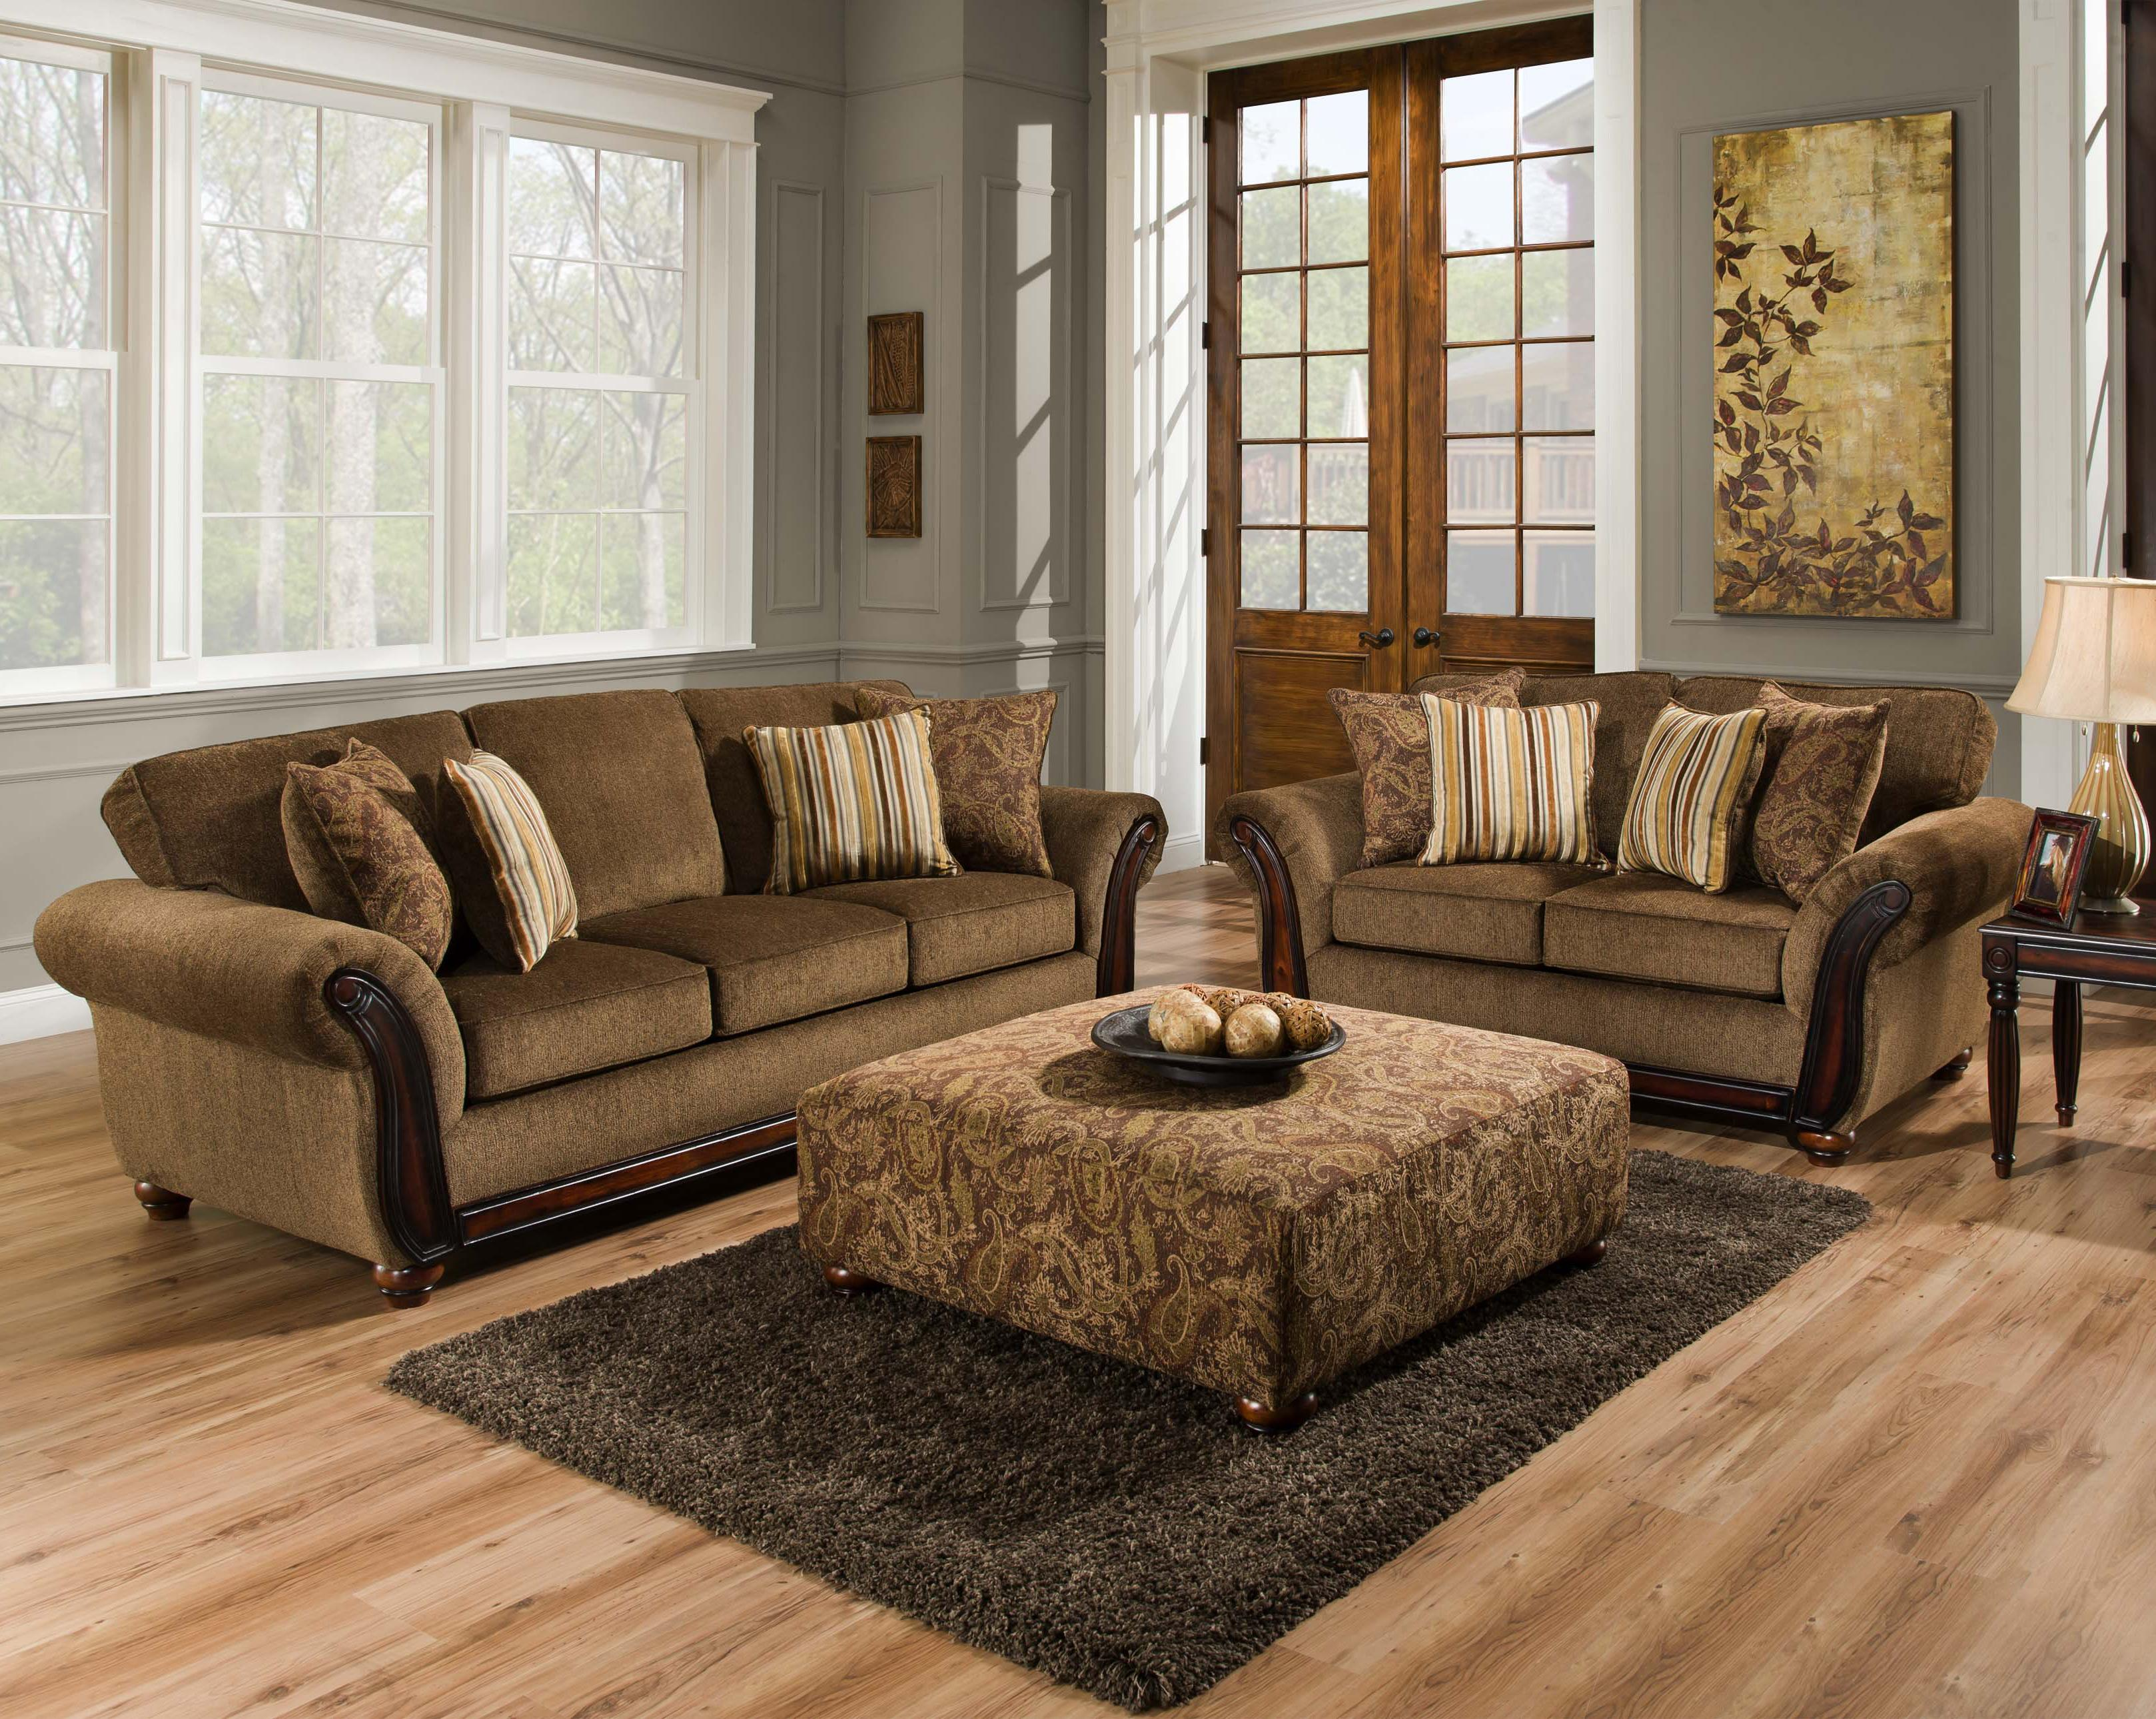 Comfy wilcox furniture for home furniture with wilcox furniture corpus christi